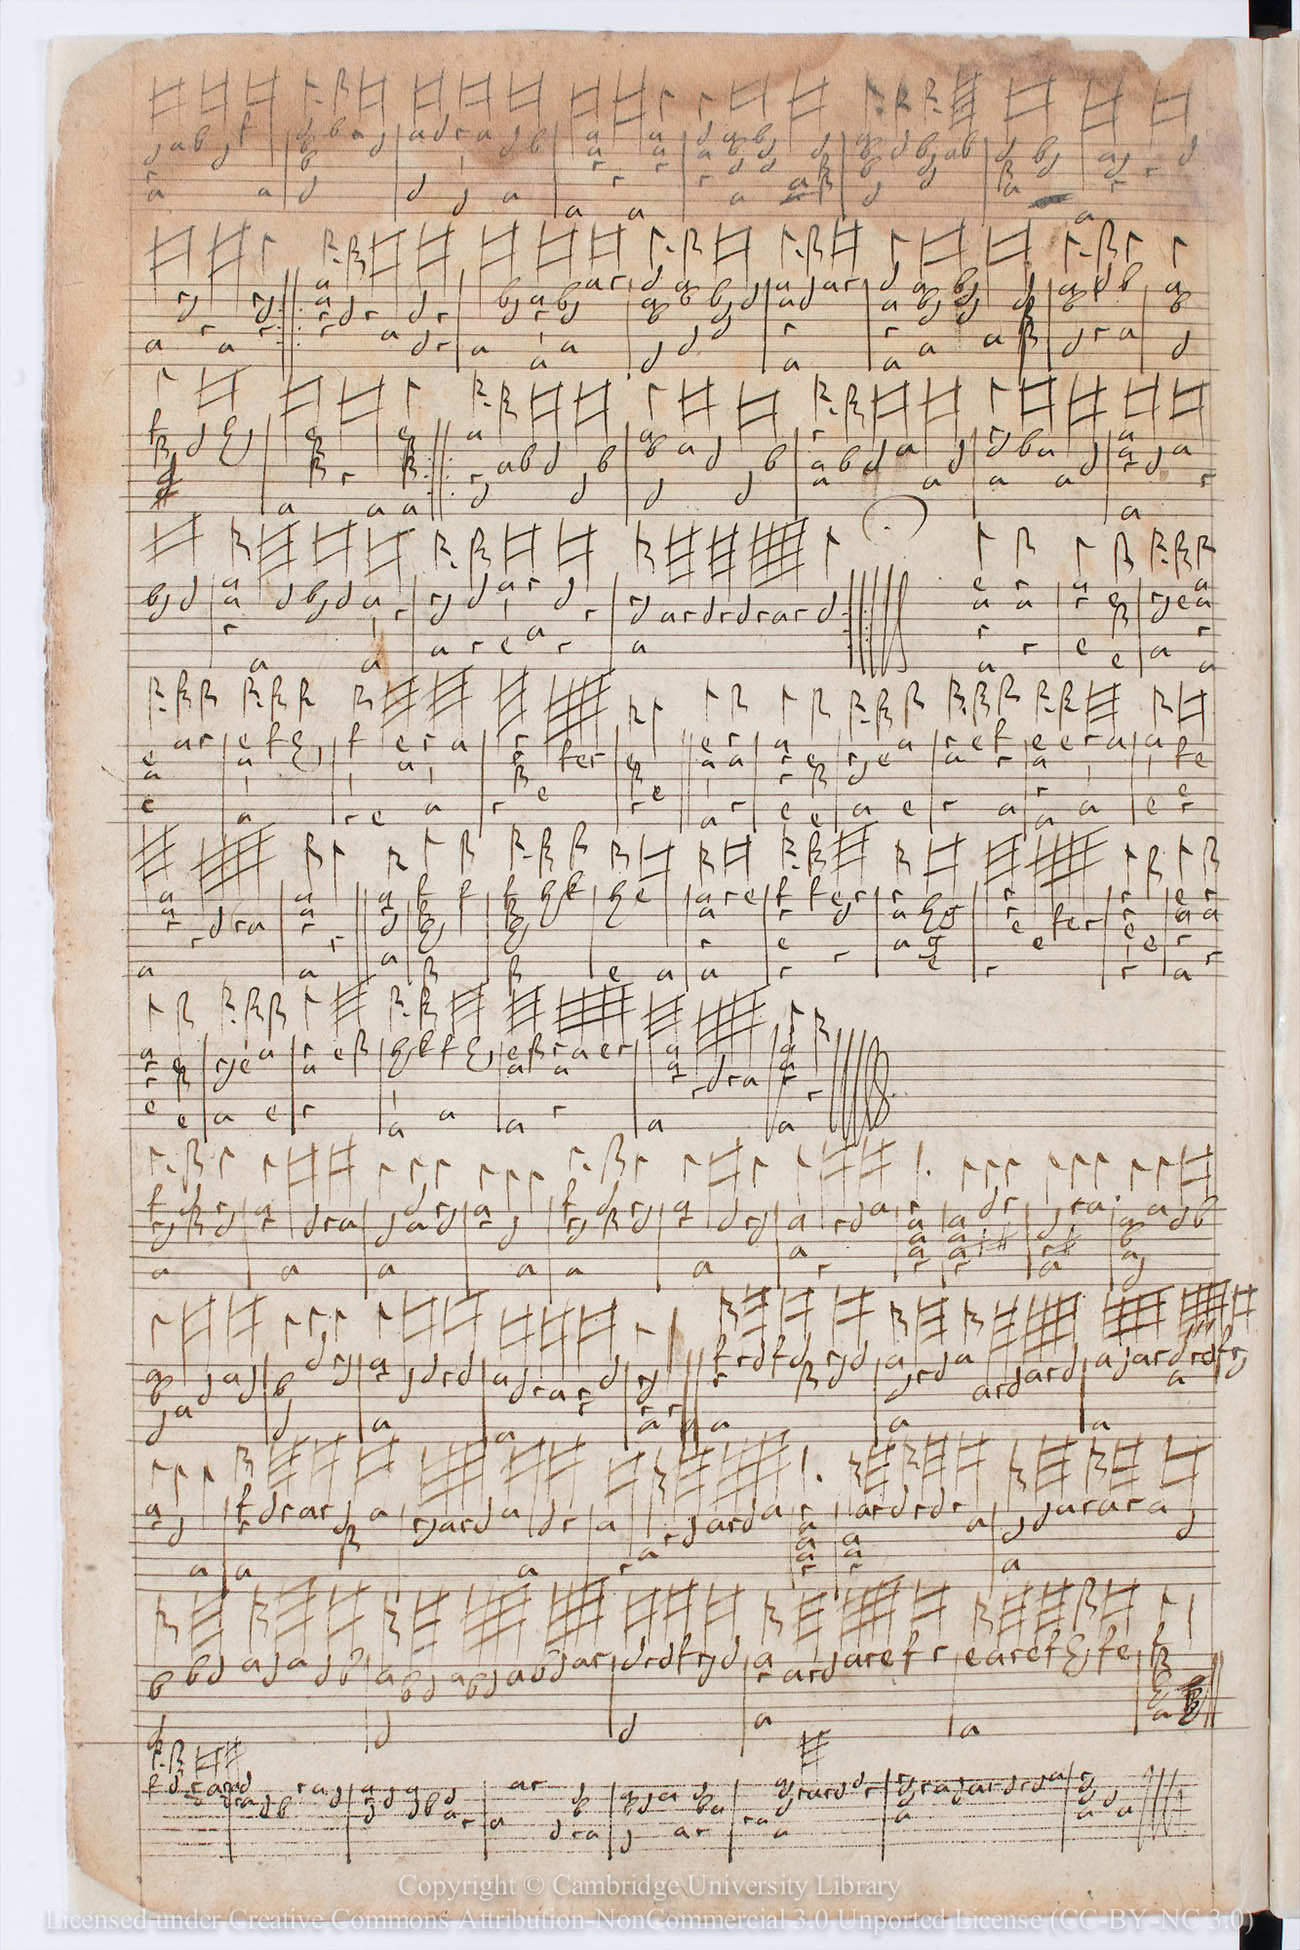 Renaissance era music sheet